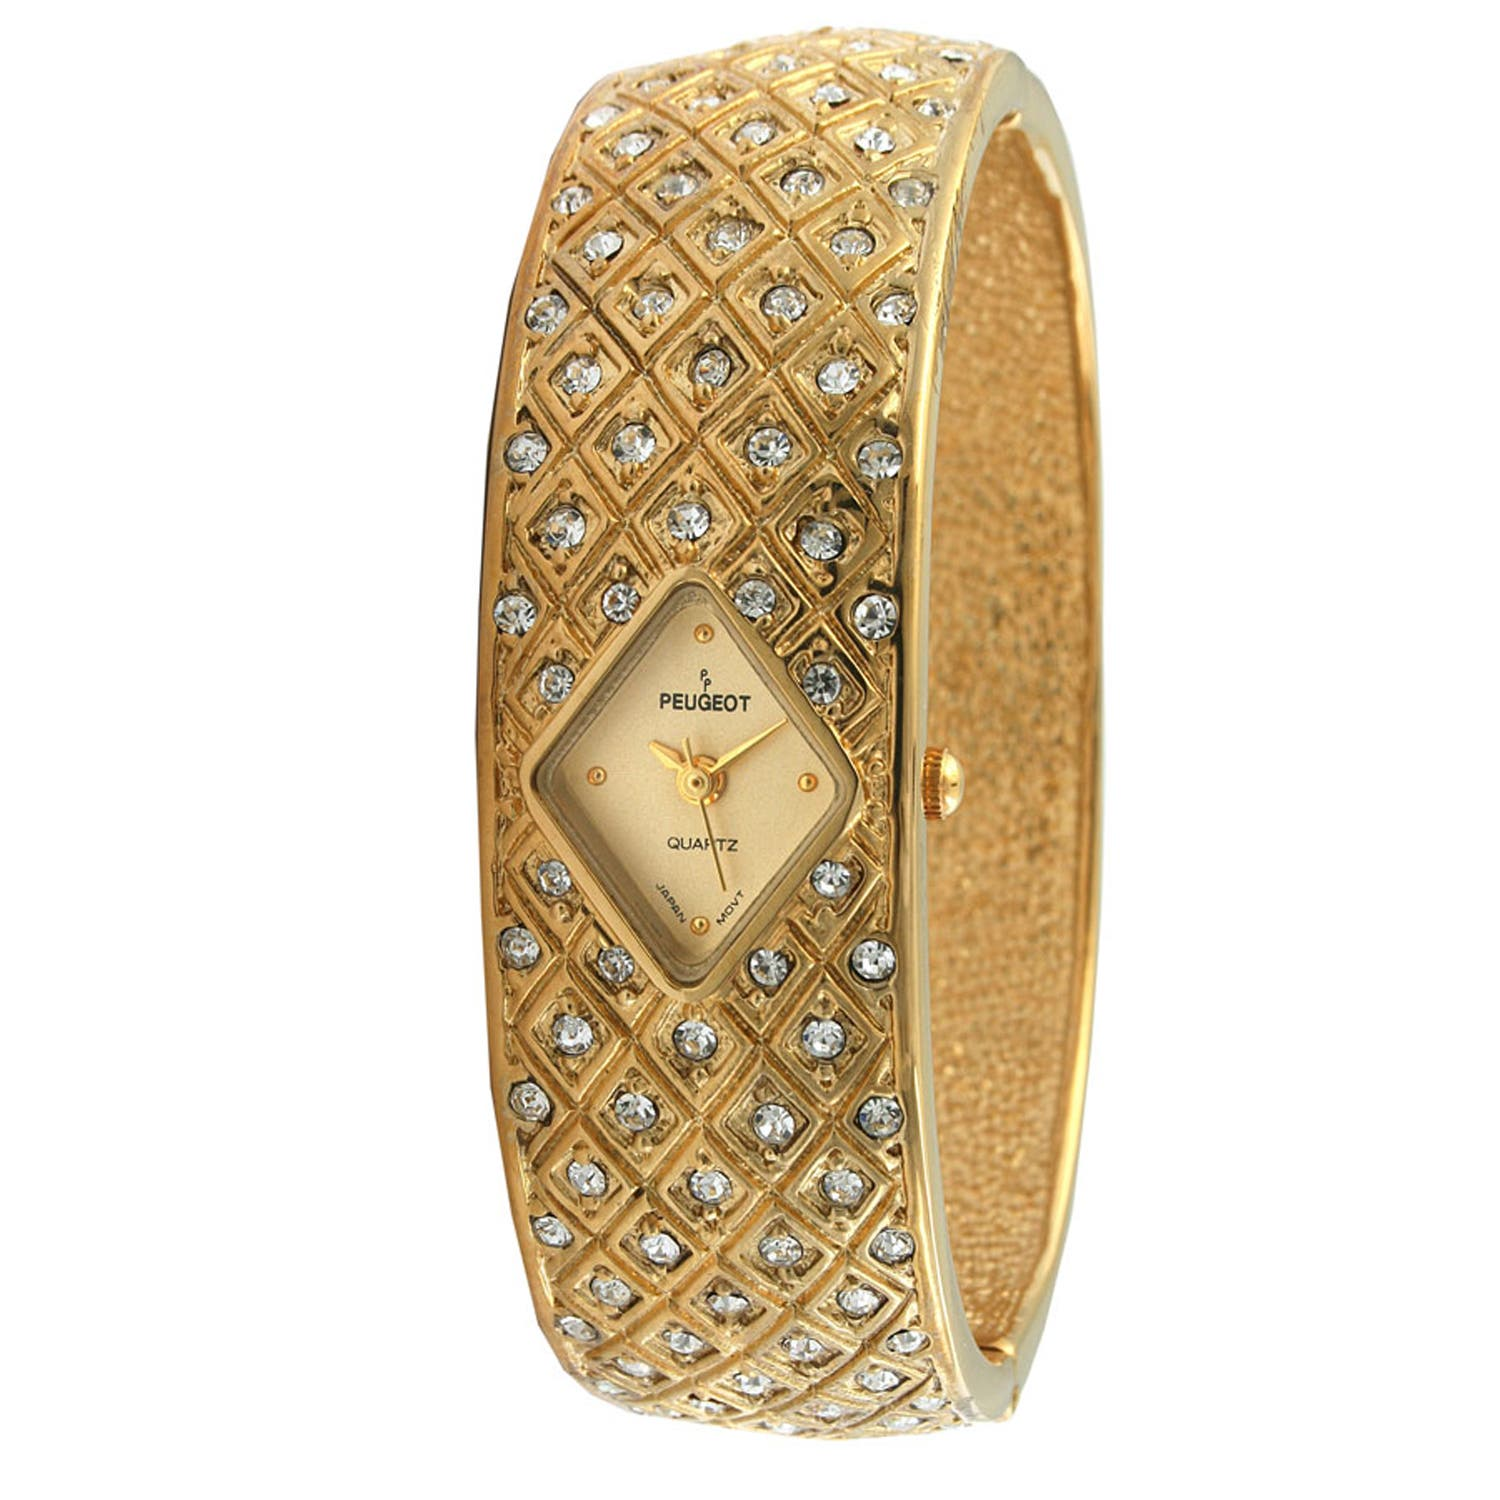 Peugeot Women's Vintage Goldtone Crystal Bangle Watch|https://ak1.ostkcdn.com/images/products/7194482/80/575/Peugeot-Womens-Vintage-Goldtone-Crystal-Bangle-Watch-P14681284.jpg?impolicy=medium